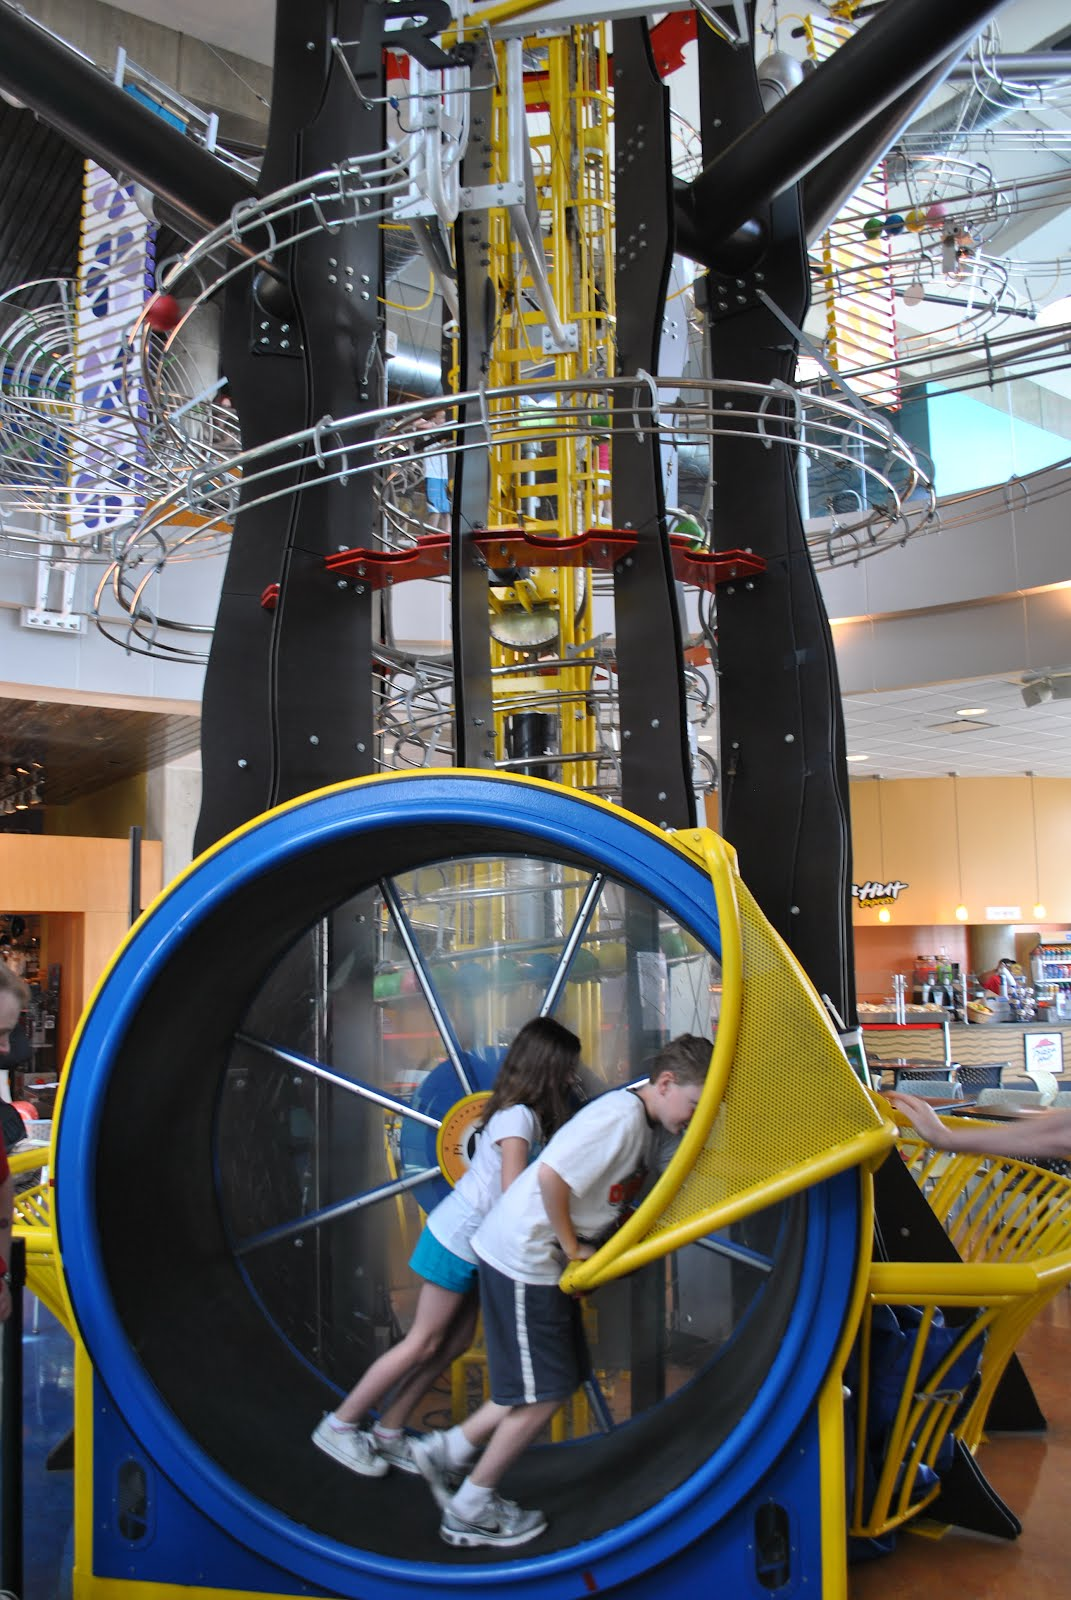 st  louis science center  9 one admission to omnimax theater